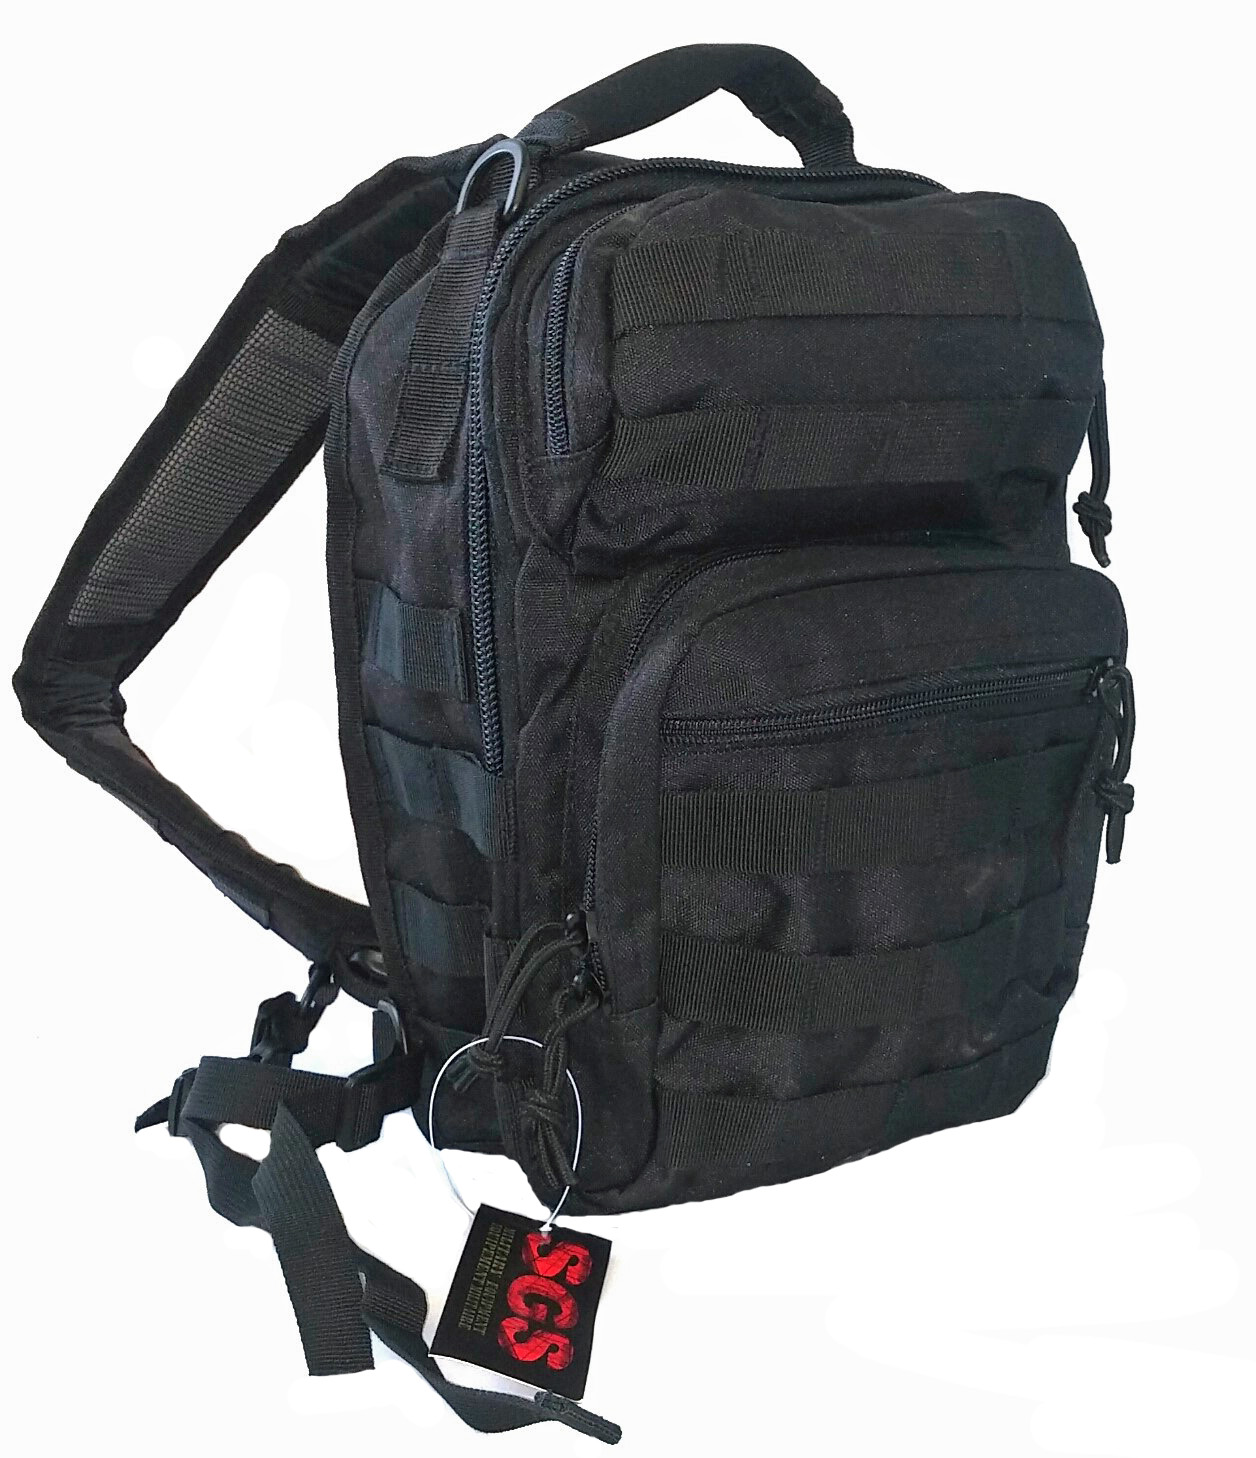 SGS Tactical assault pack small size-Black